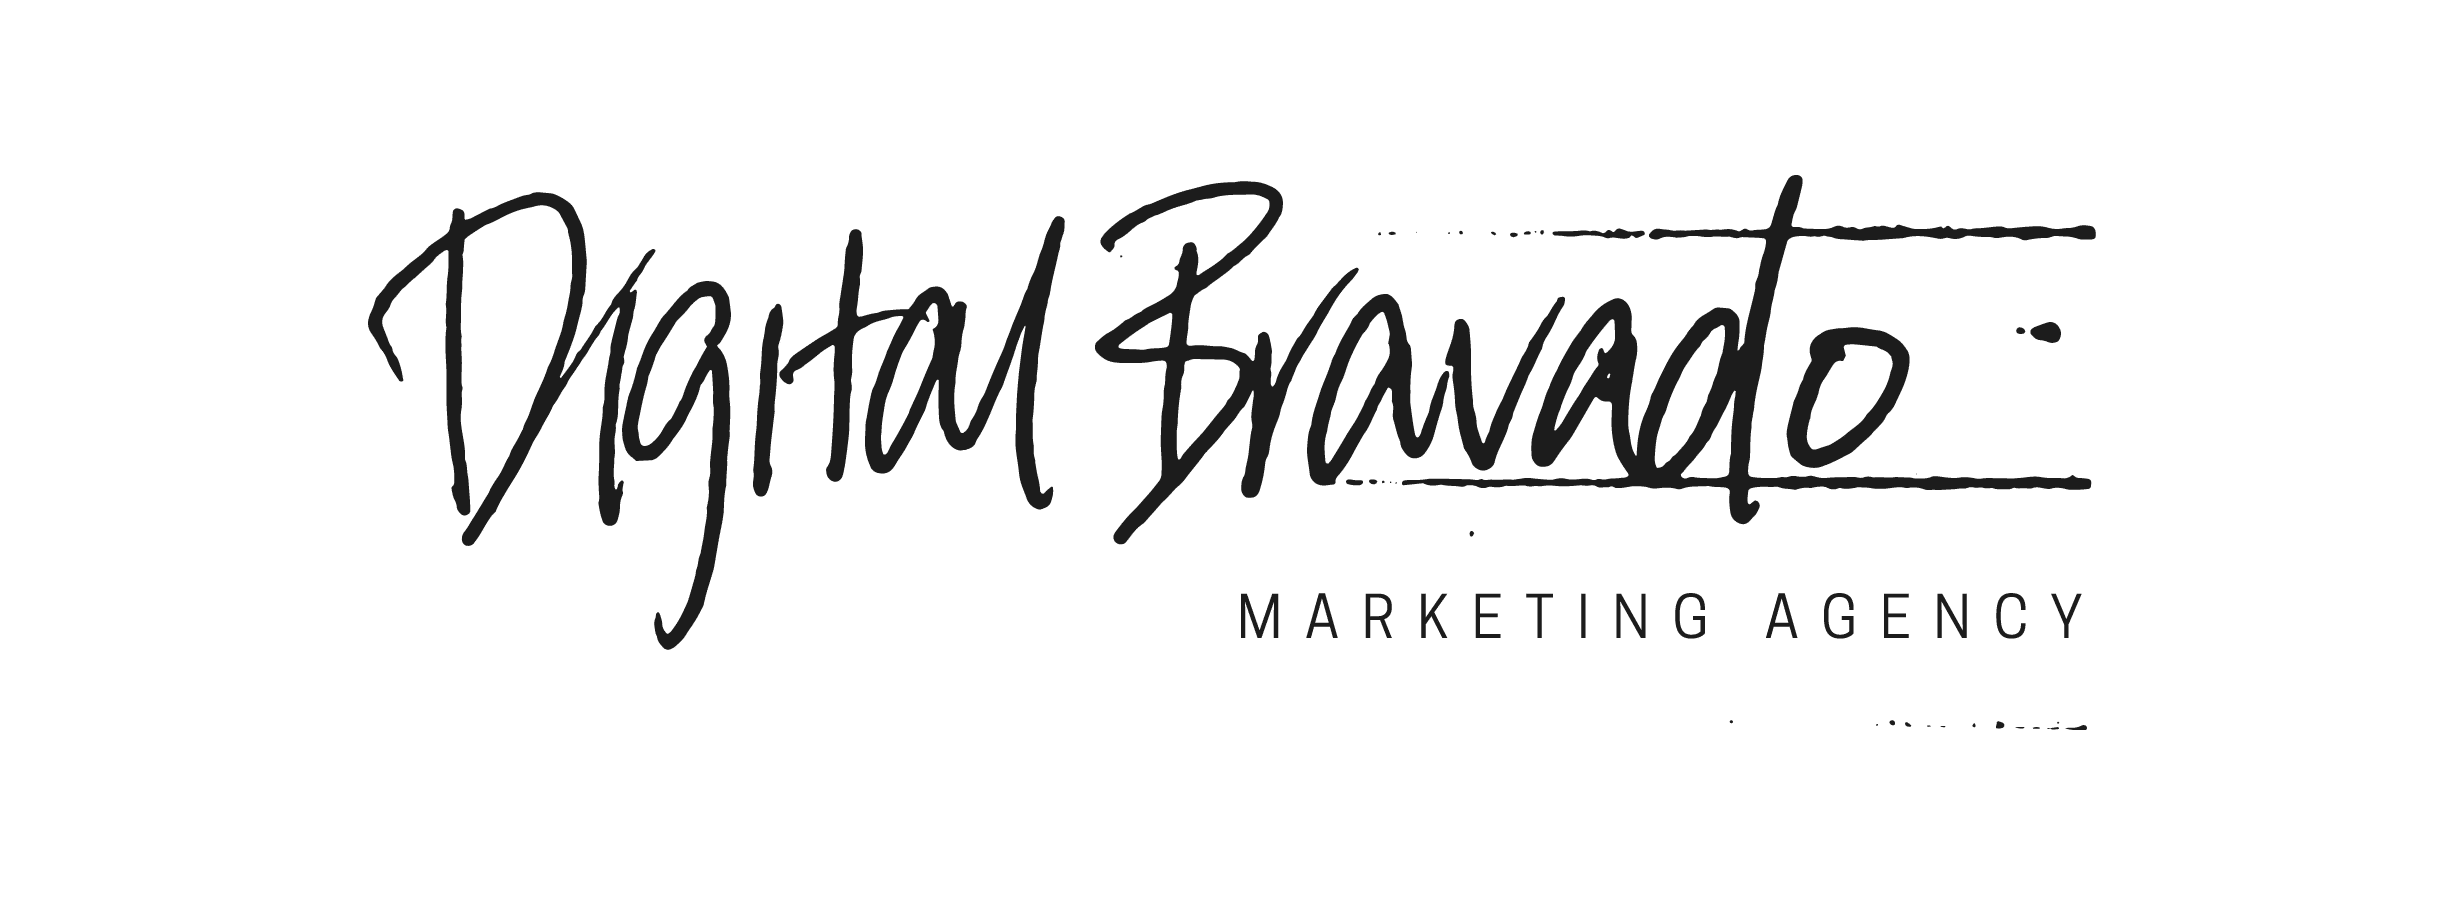 Digital Bravado digital_bravado_logo_2018_white_back_black_text-1